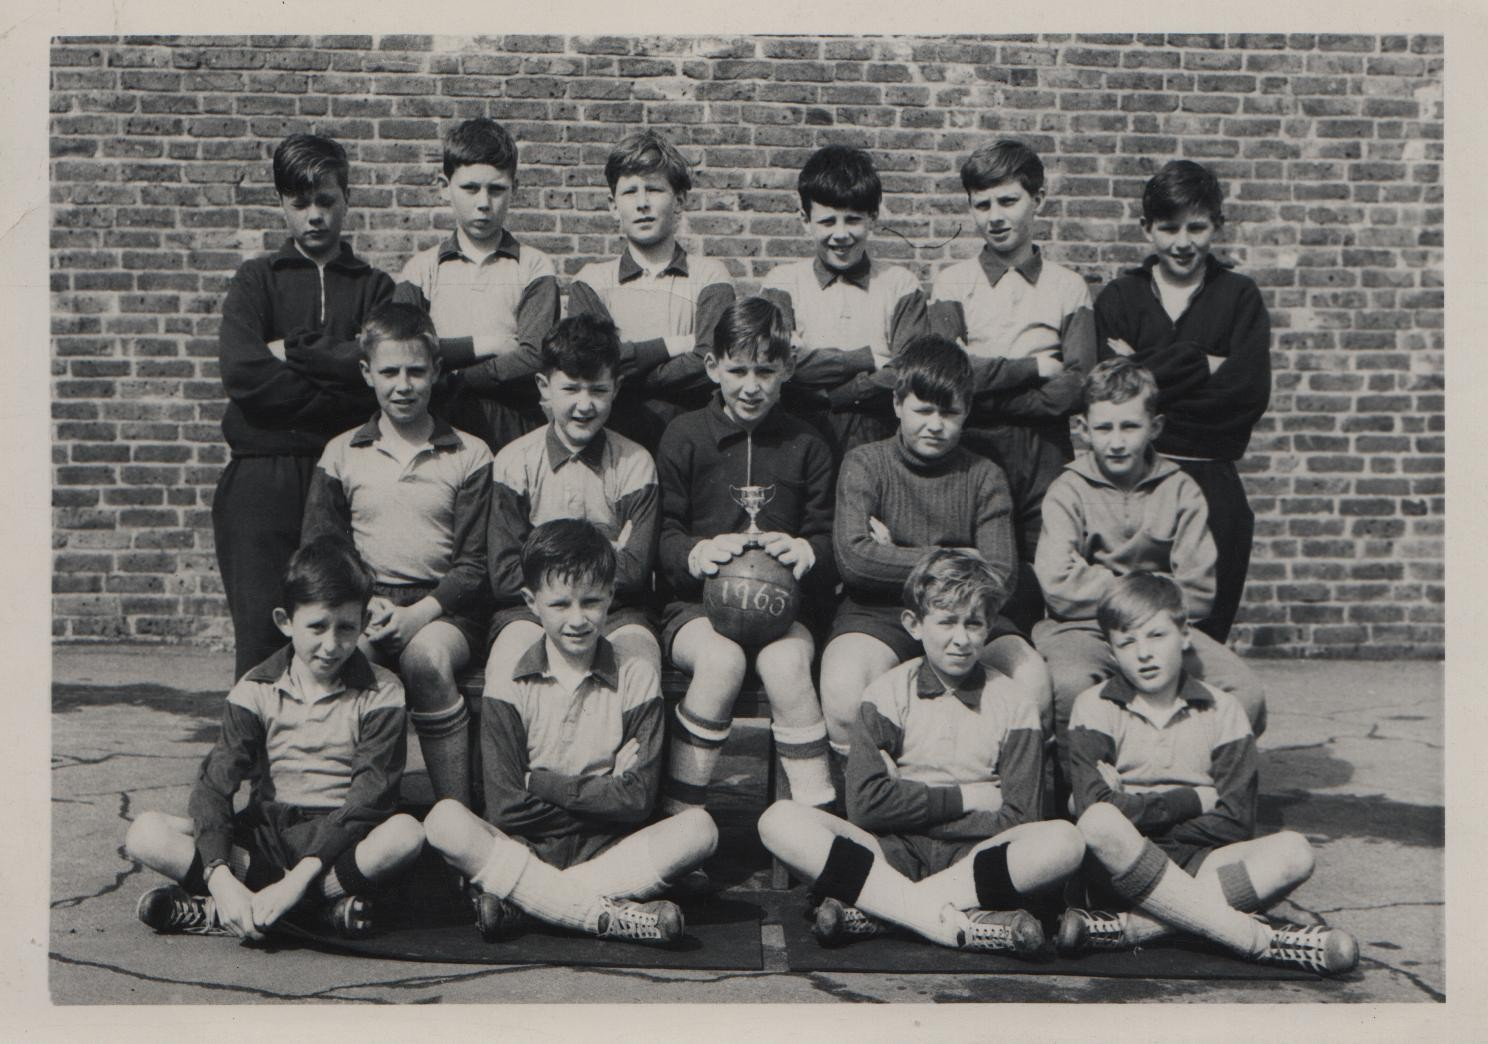 Hamstel Road school football team 1963